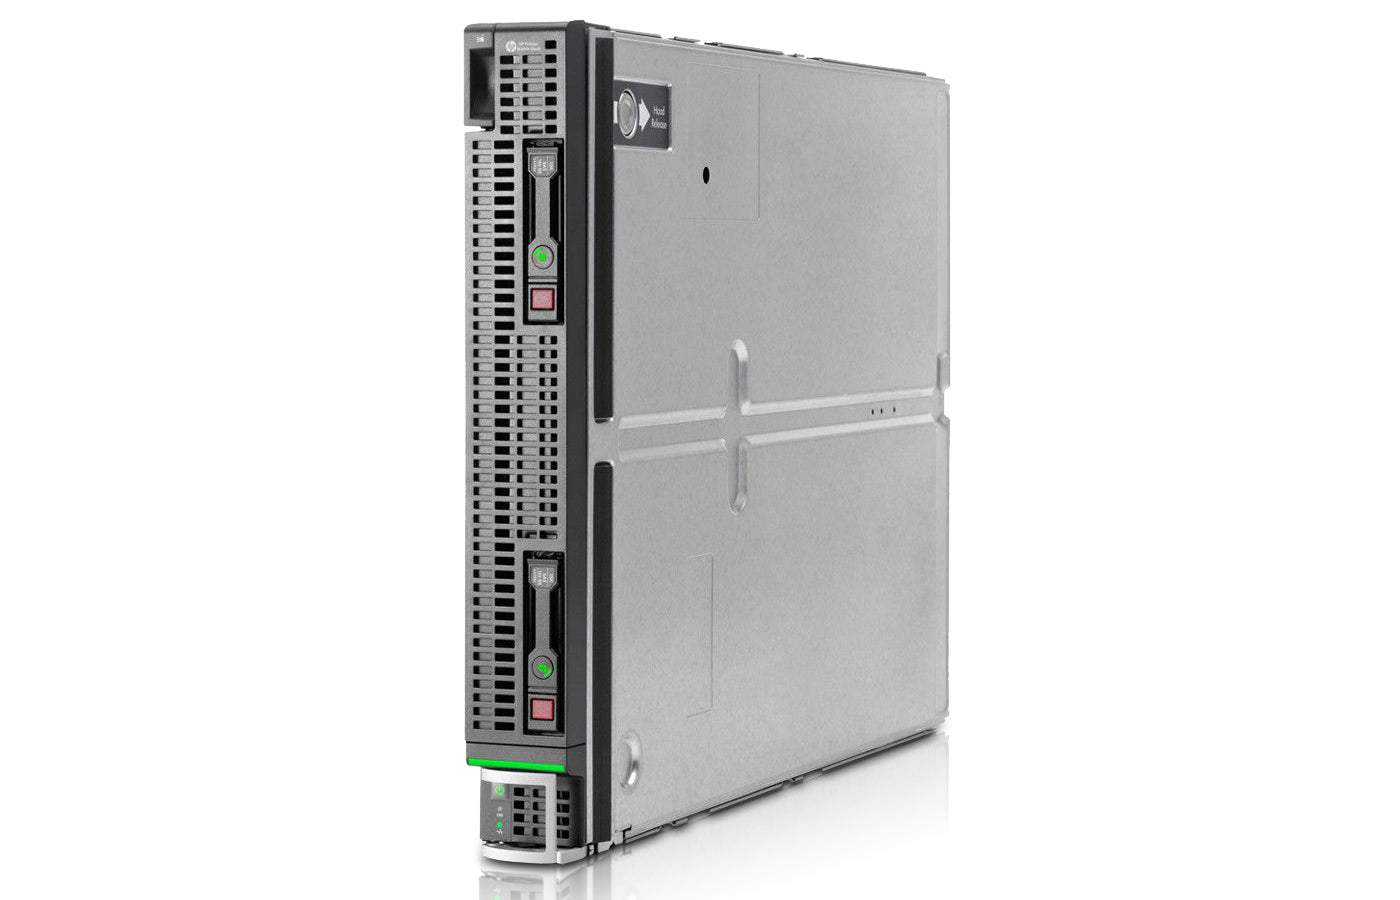 HPE ProLiant BL660c Gen8 CTO Server Blade